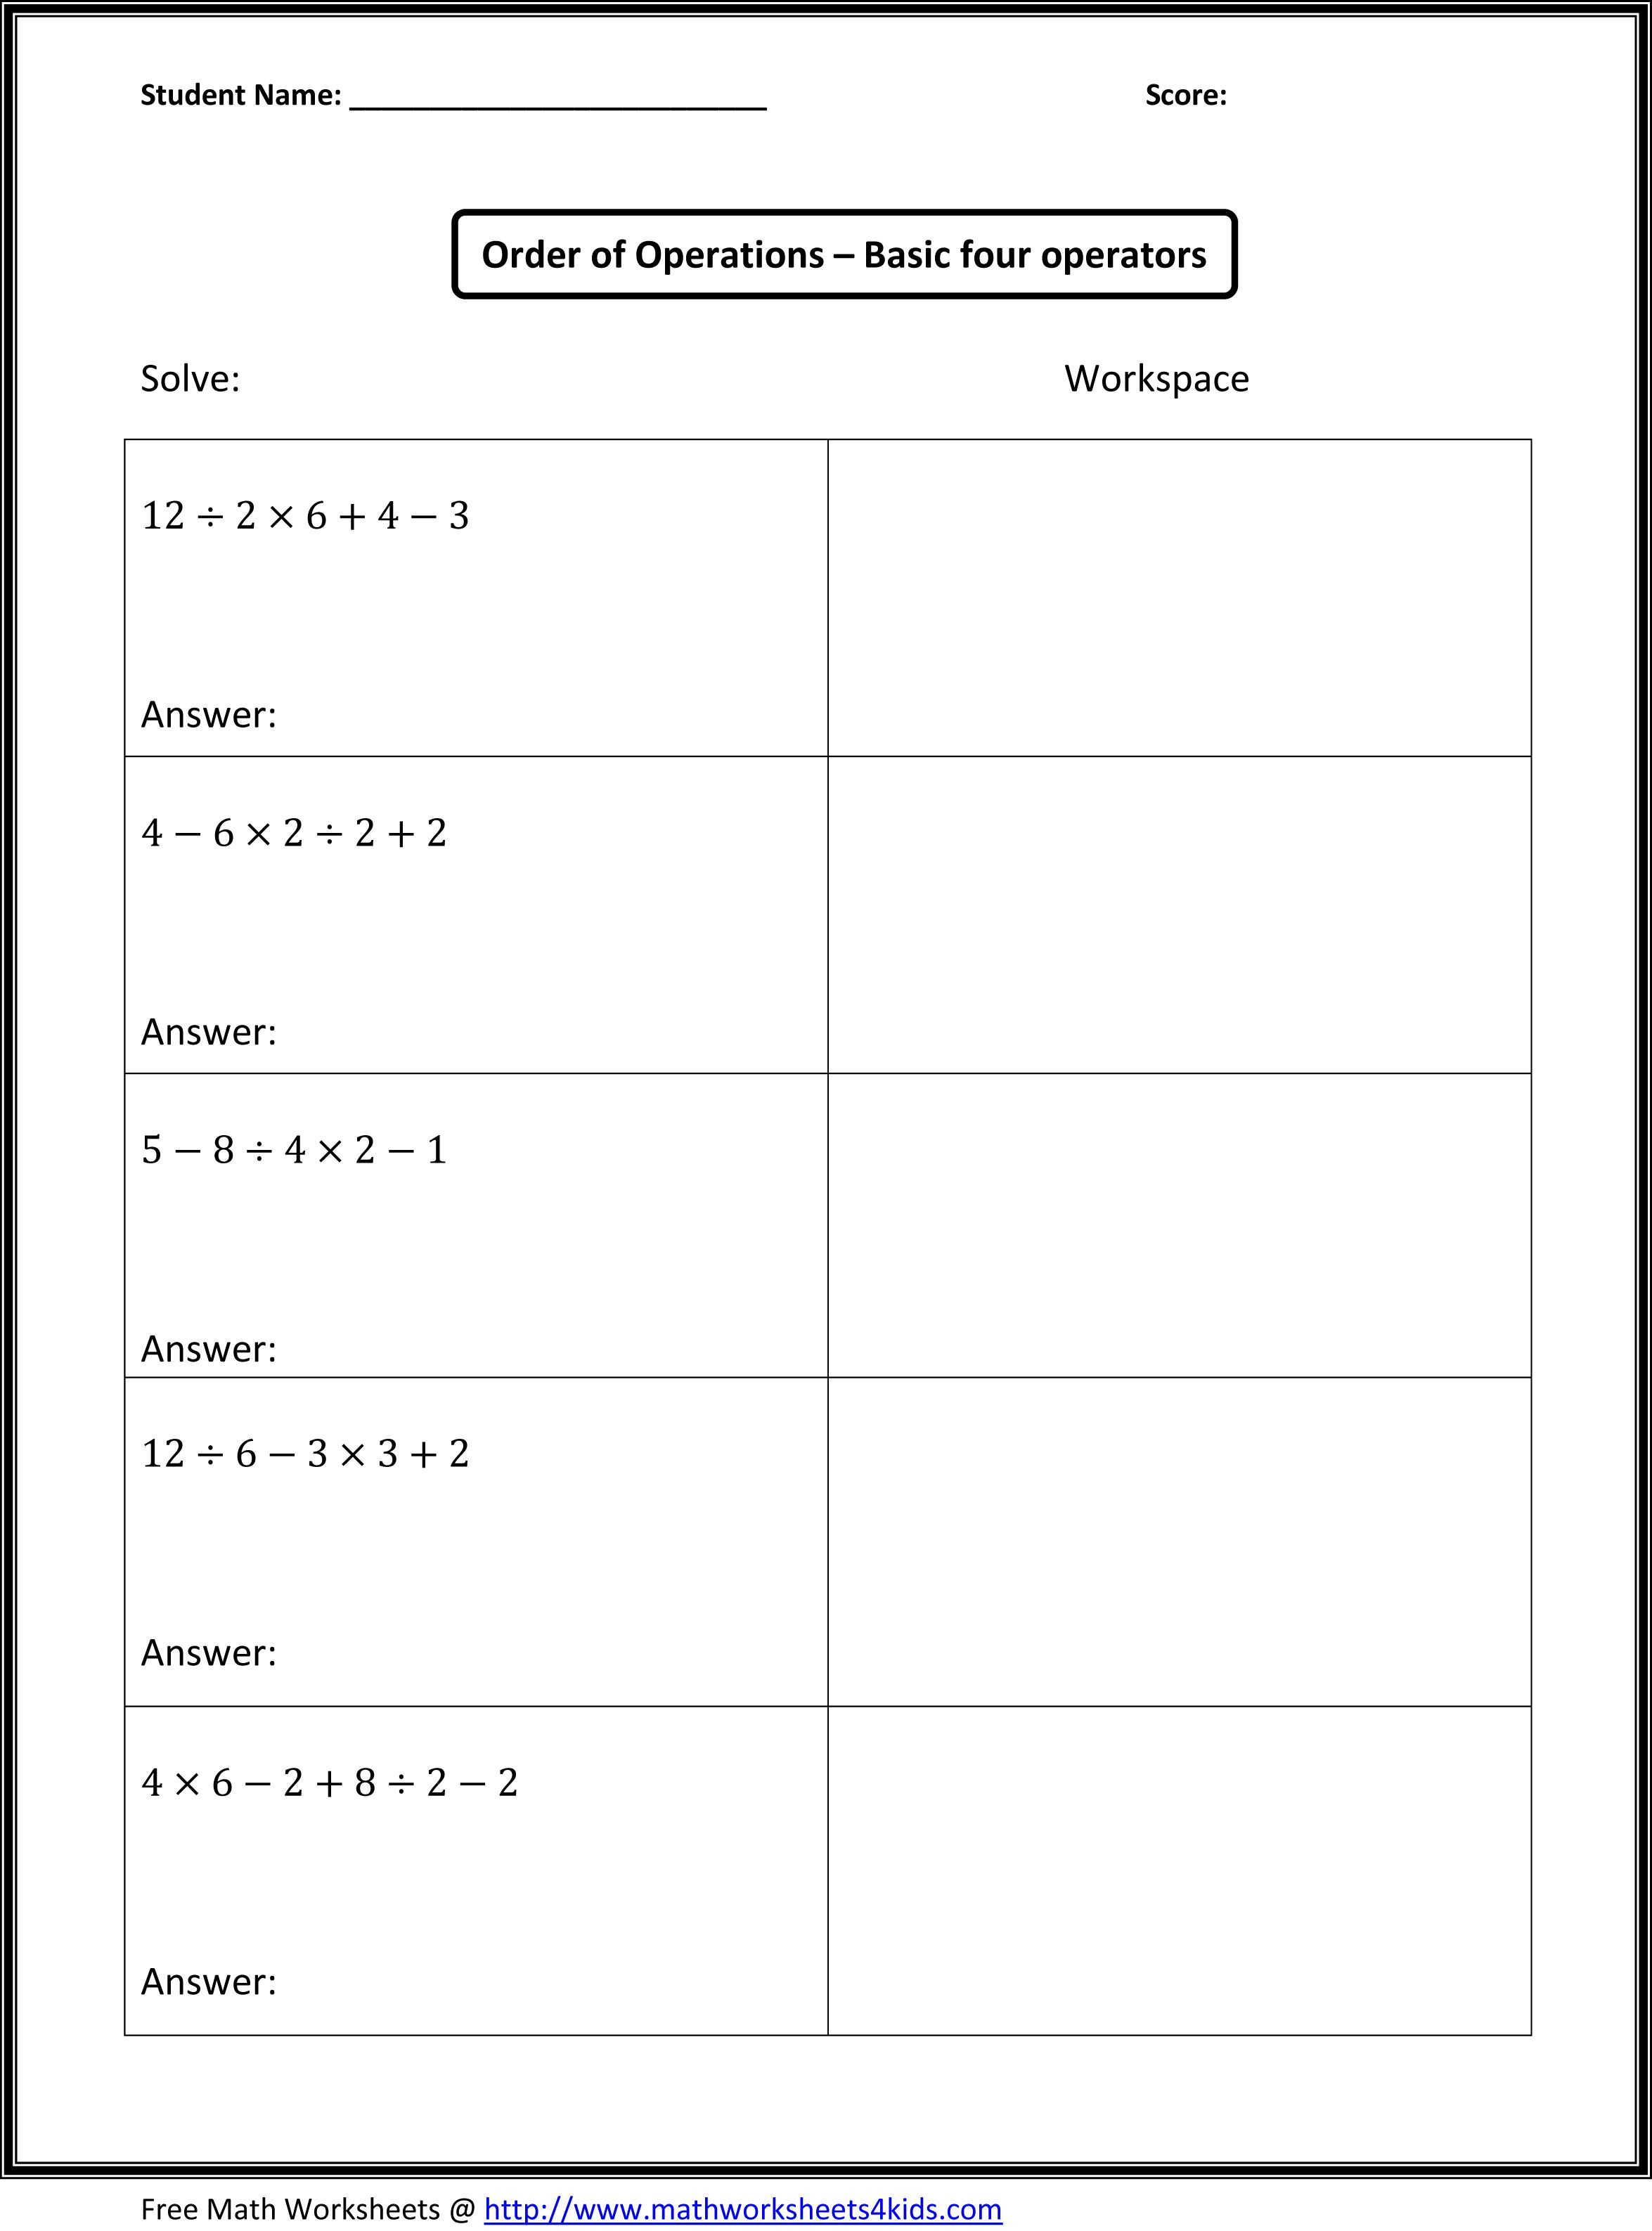 Order Of Operations | Math Worksheets | 4Th Grade Math Worksheets | Algebra Worksheets For 4Th Grade Printable